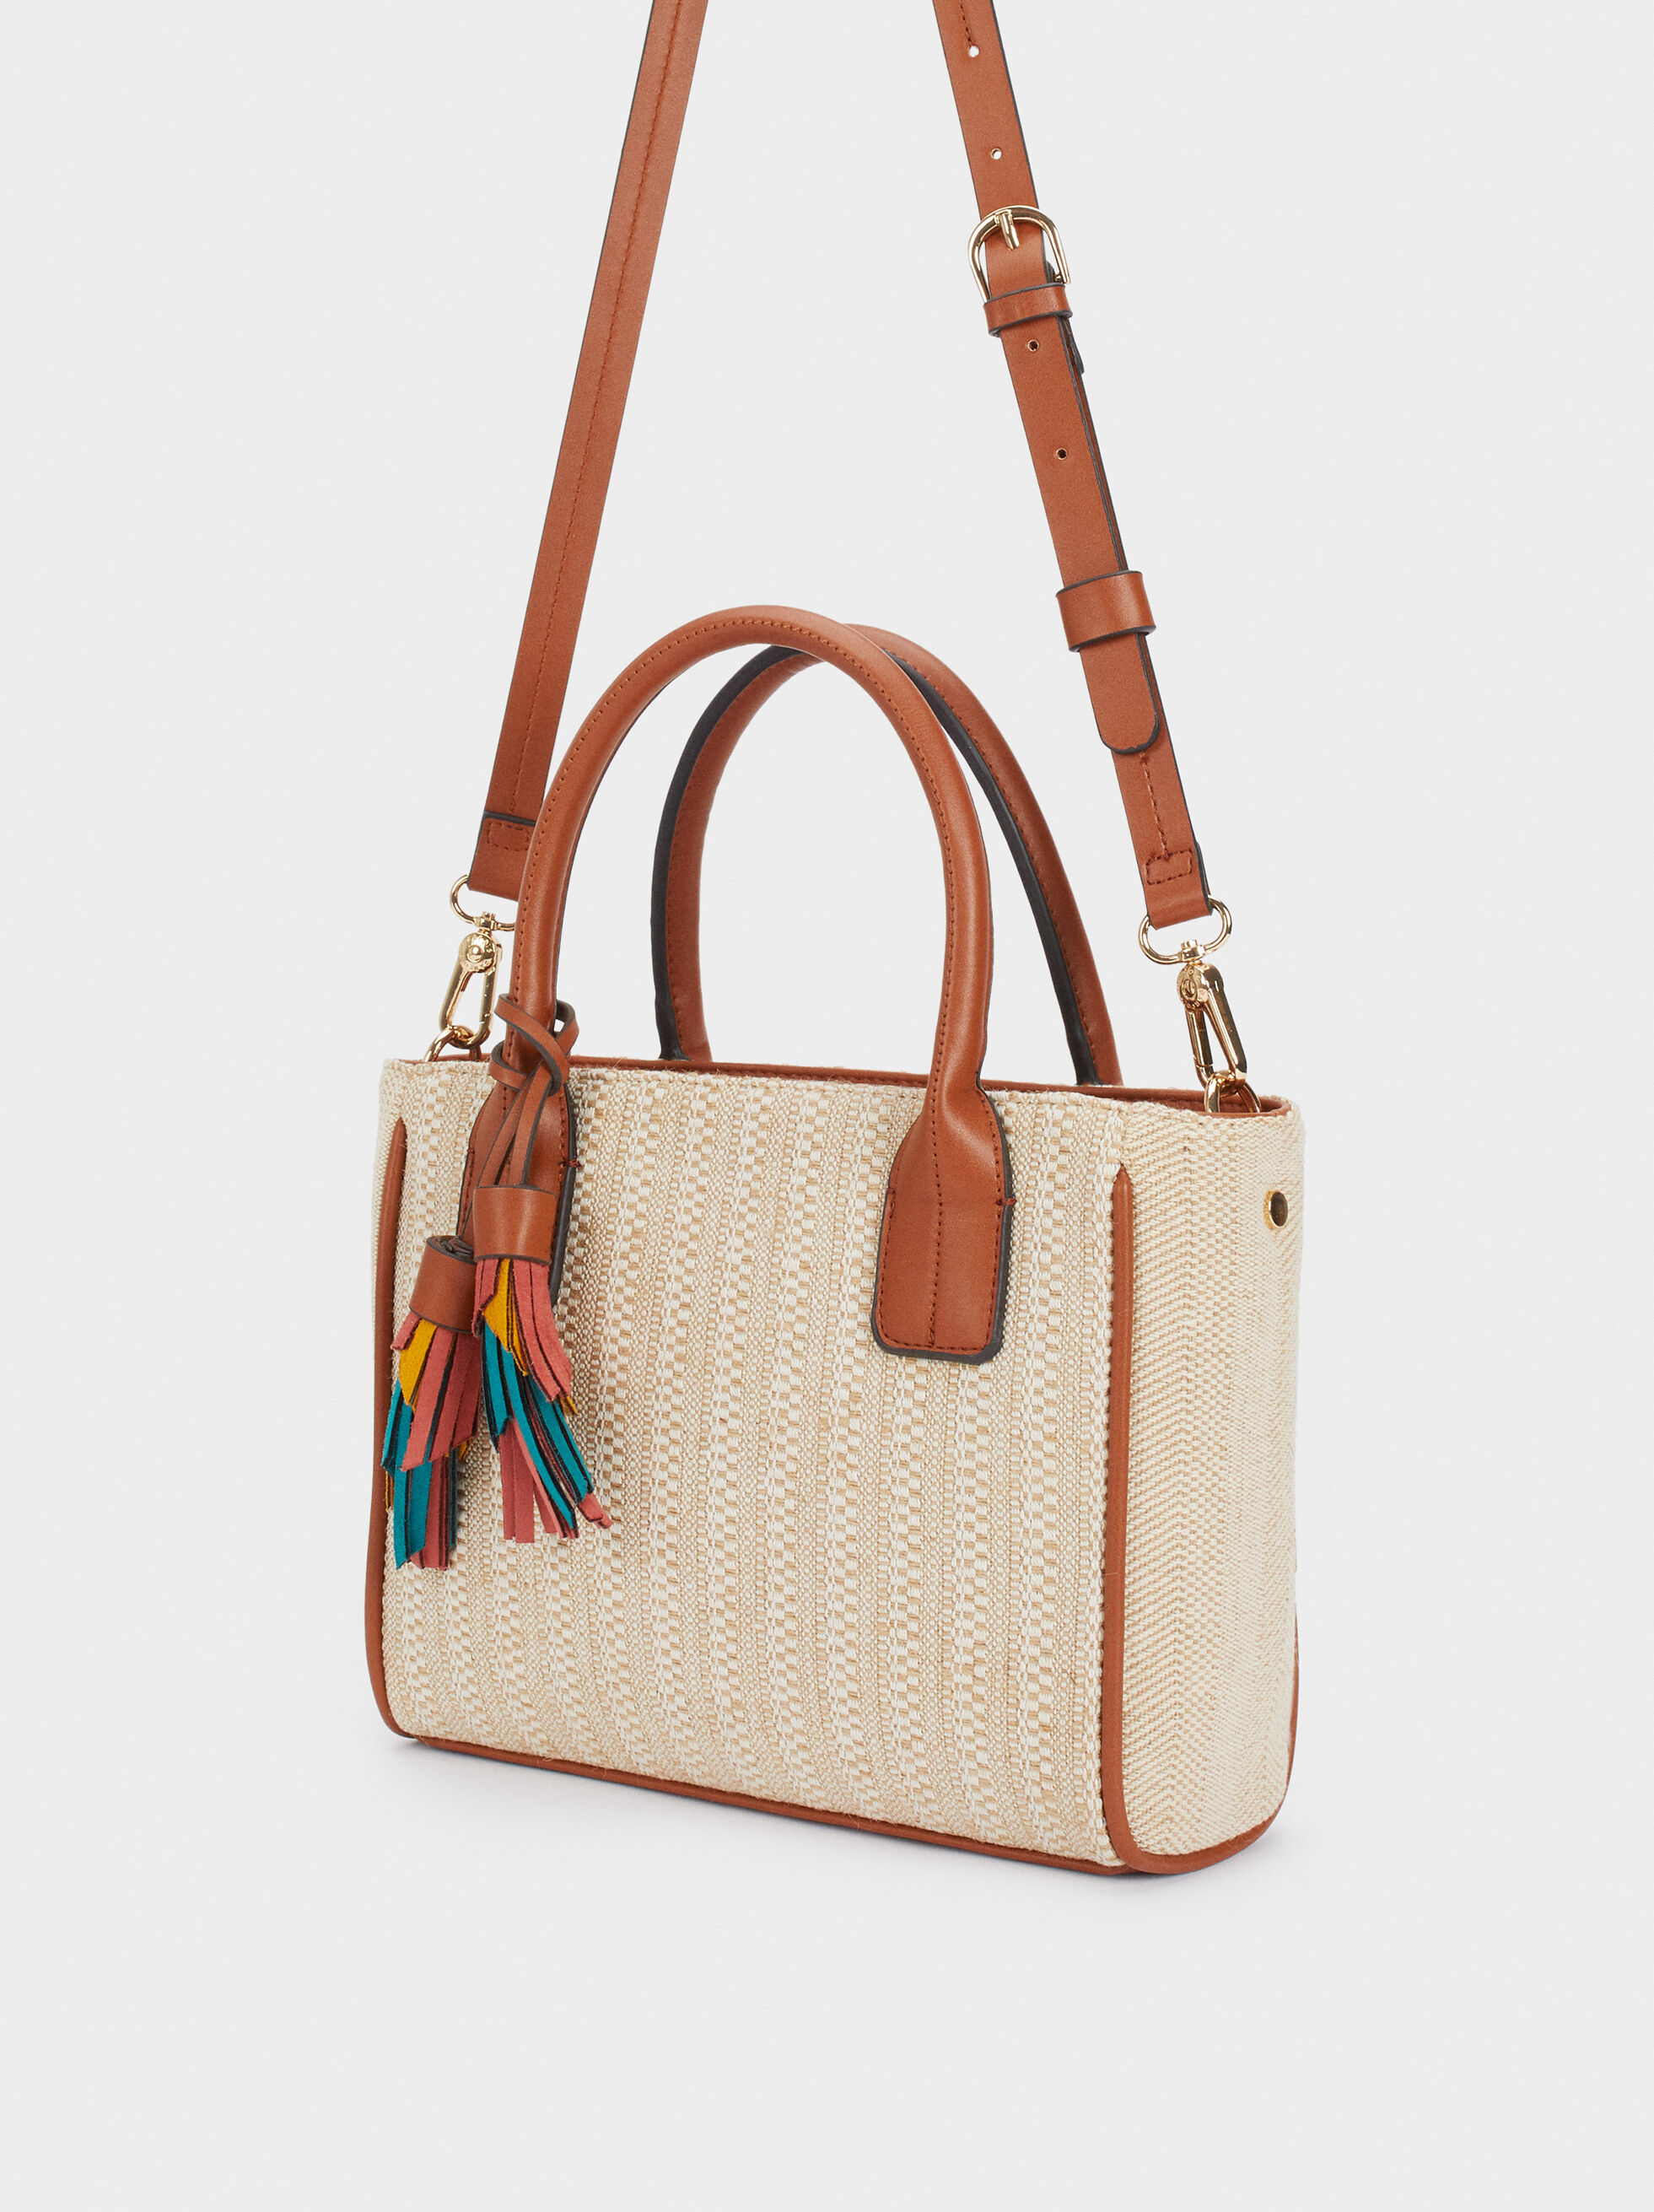 Shopper Bag With A Multicoloured Charm, Beige, hi-res